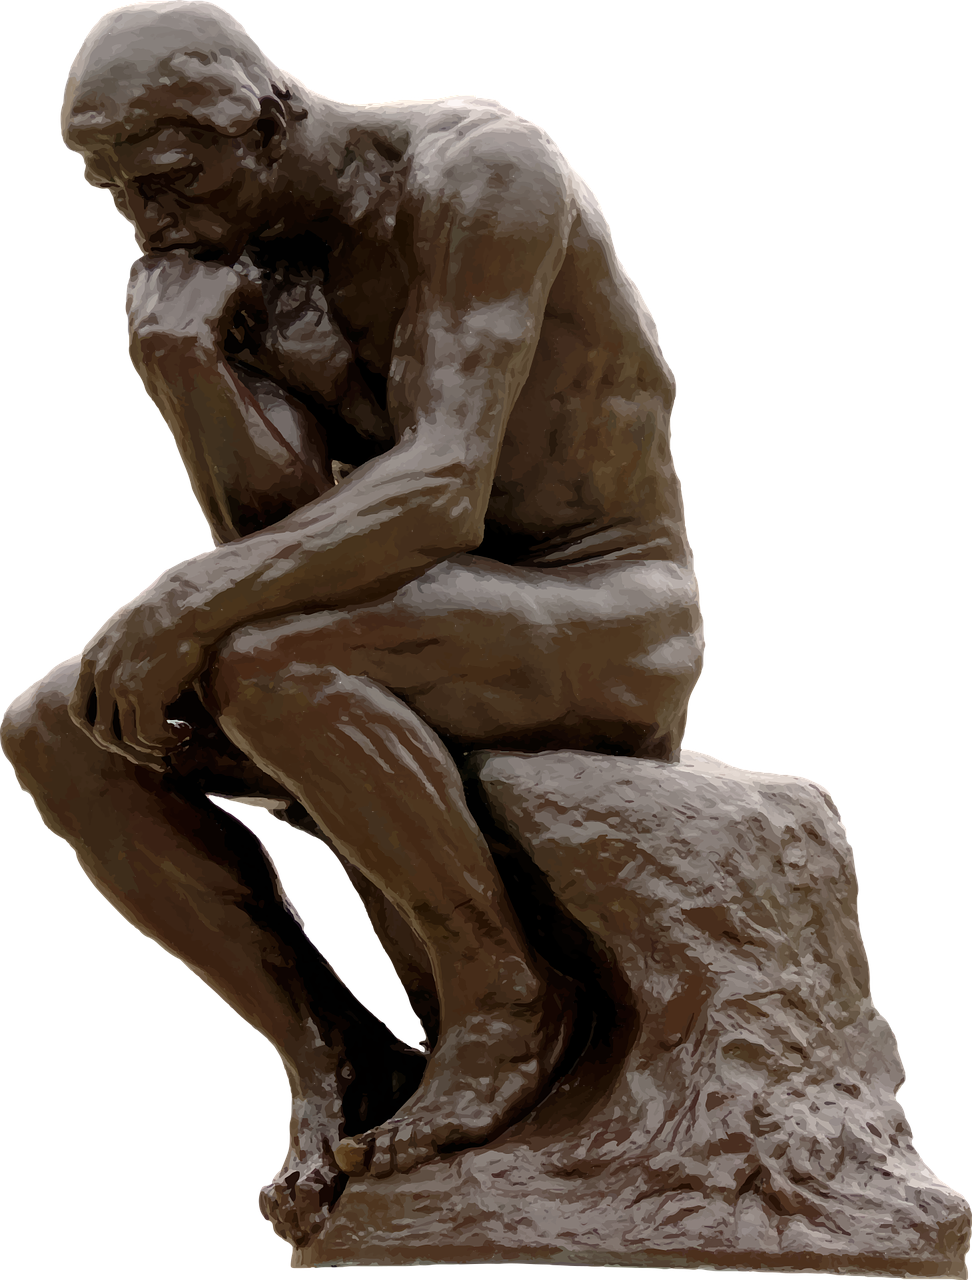 Image of The Thinker sculpture